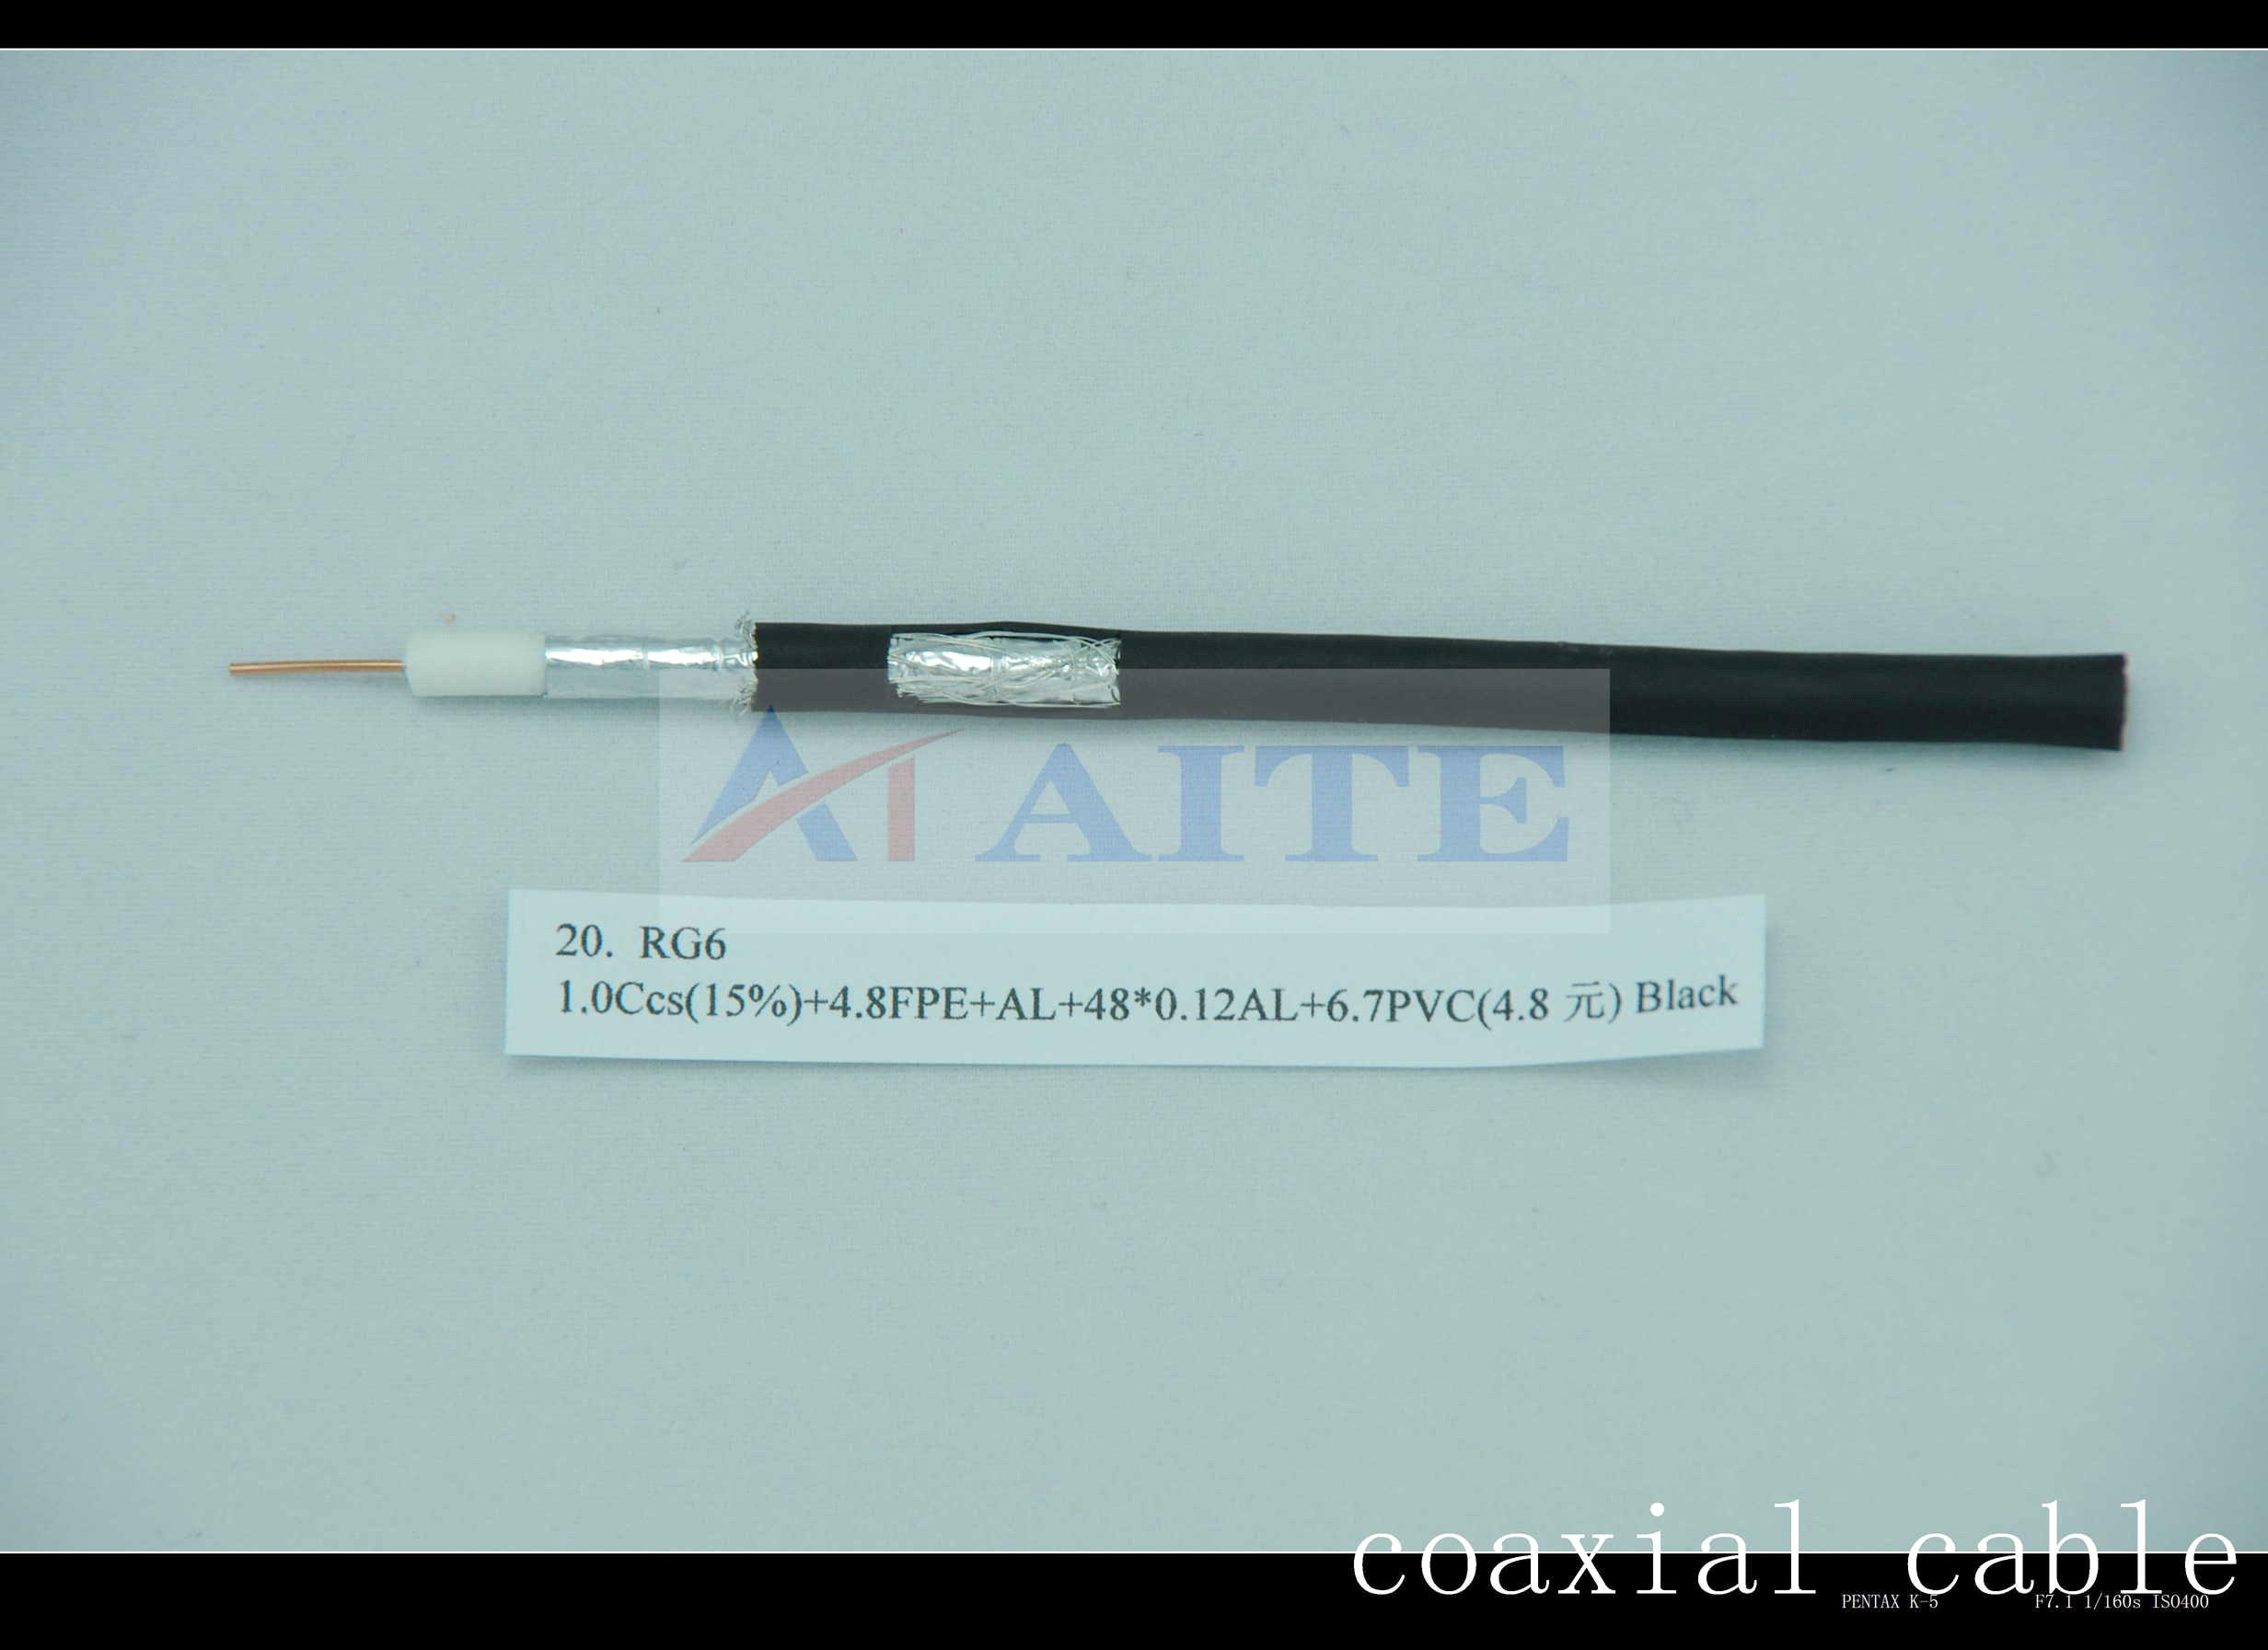 RG6 Coaxial Cable Used For CATV